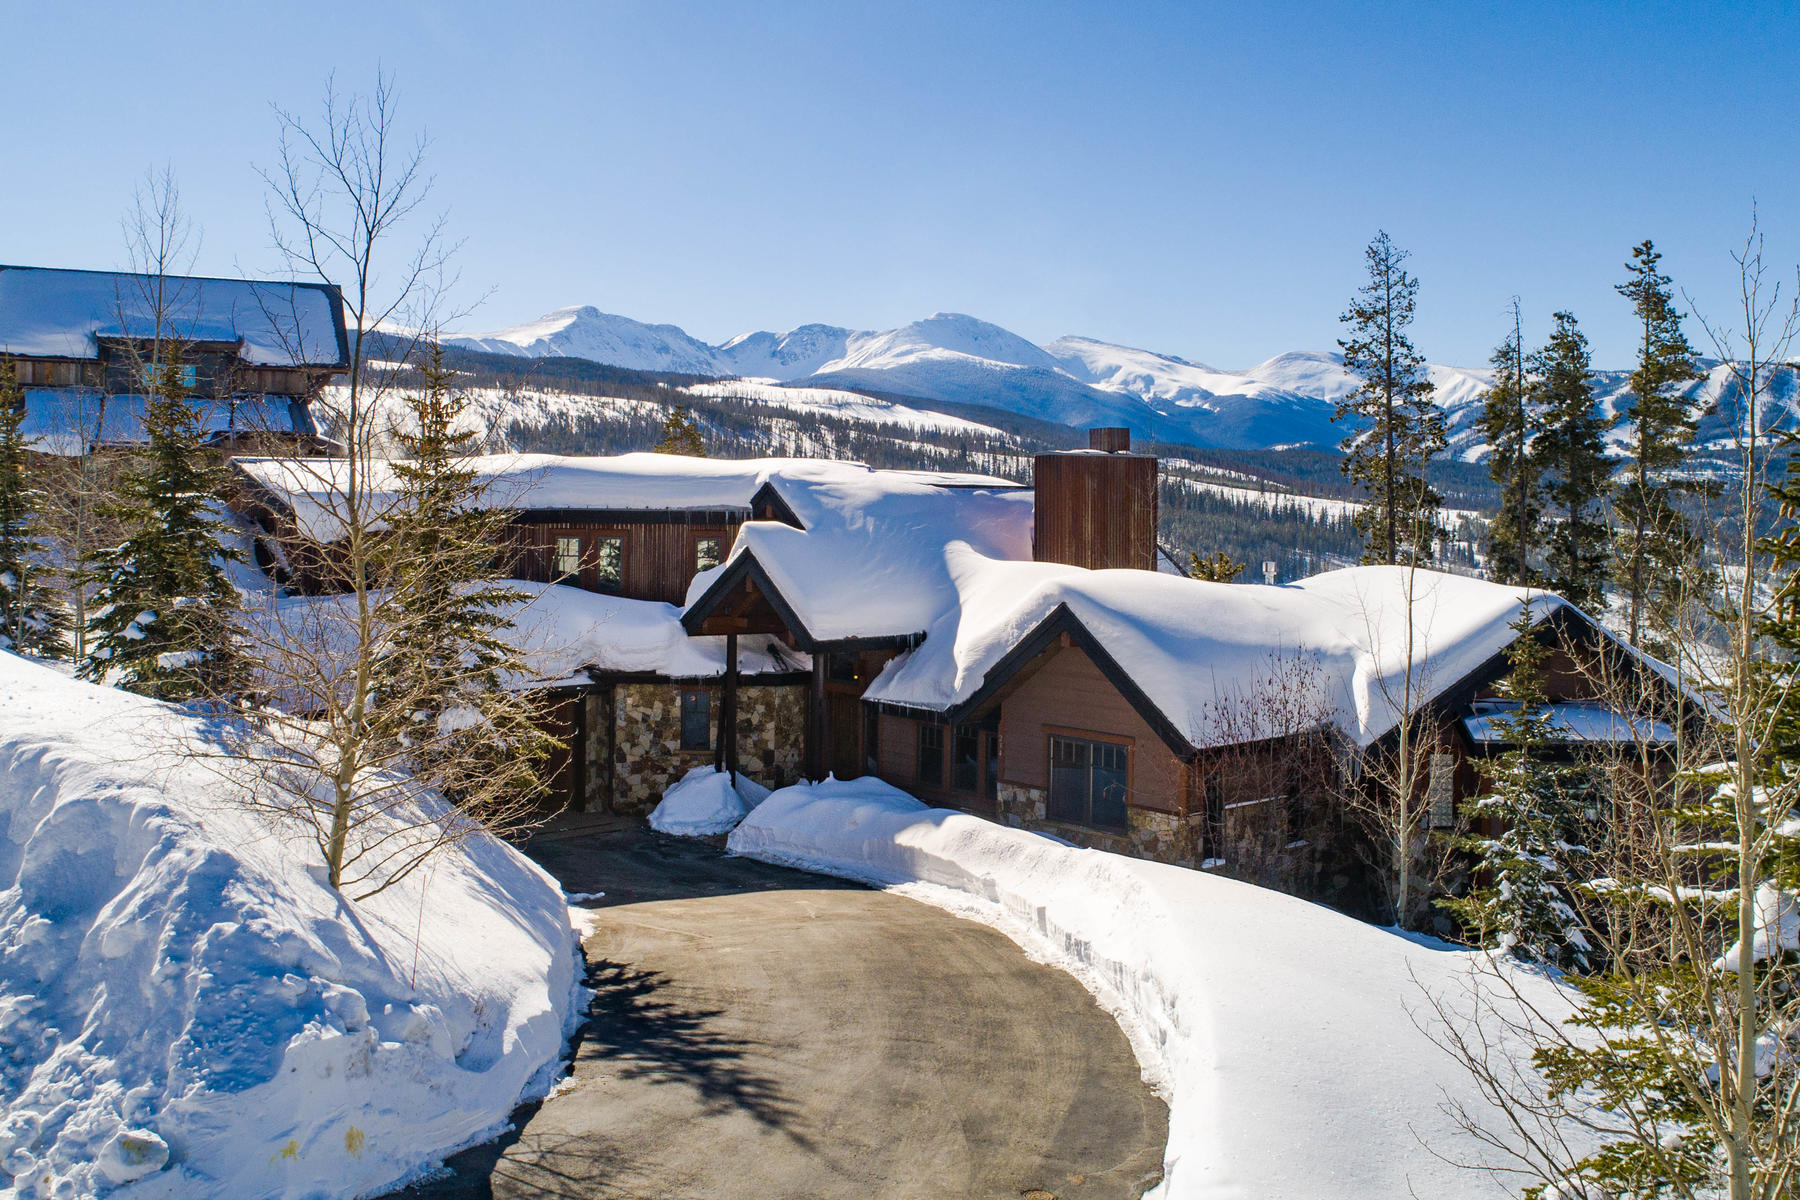 Single Family Homes for Active at Perched on the ridge, this luxurious furnished home captures breathtaking views 234 Cozens Rdg Fraser, Colorado 80442 United States